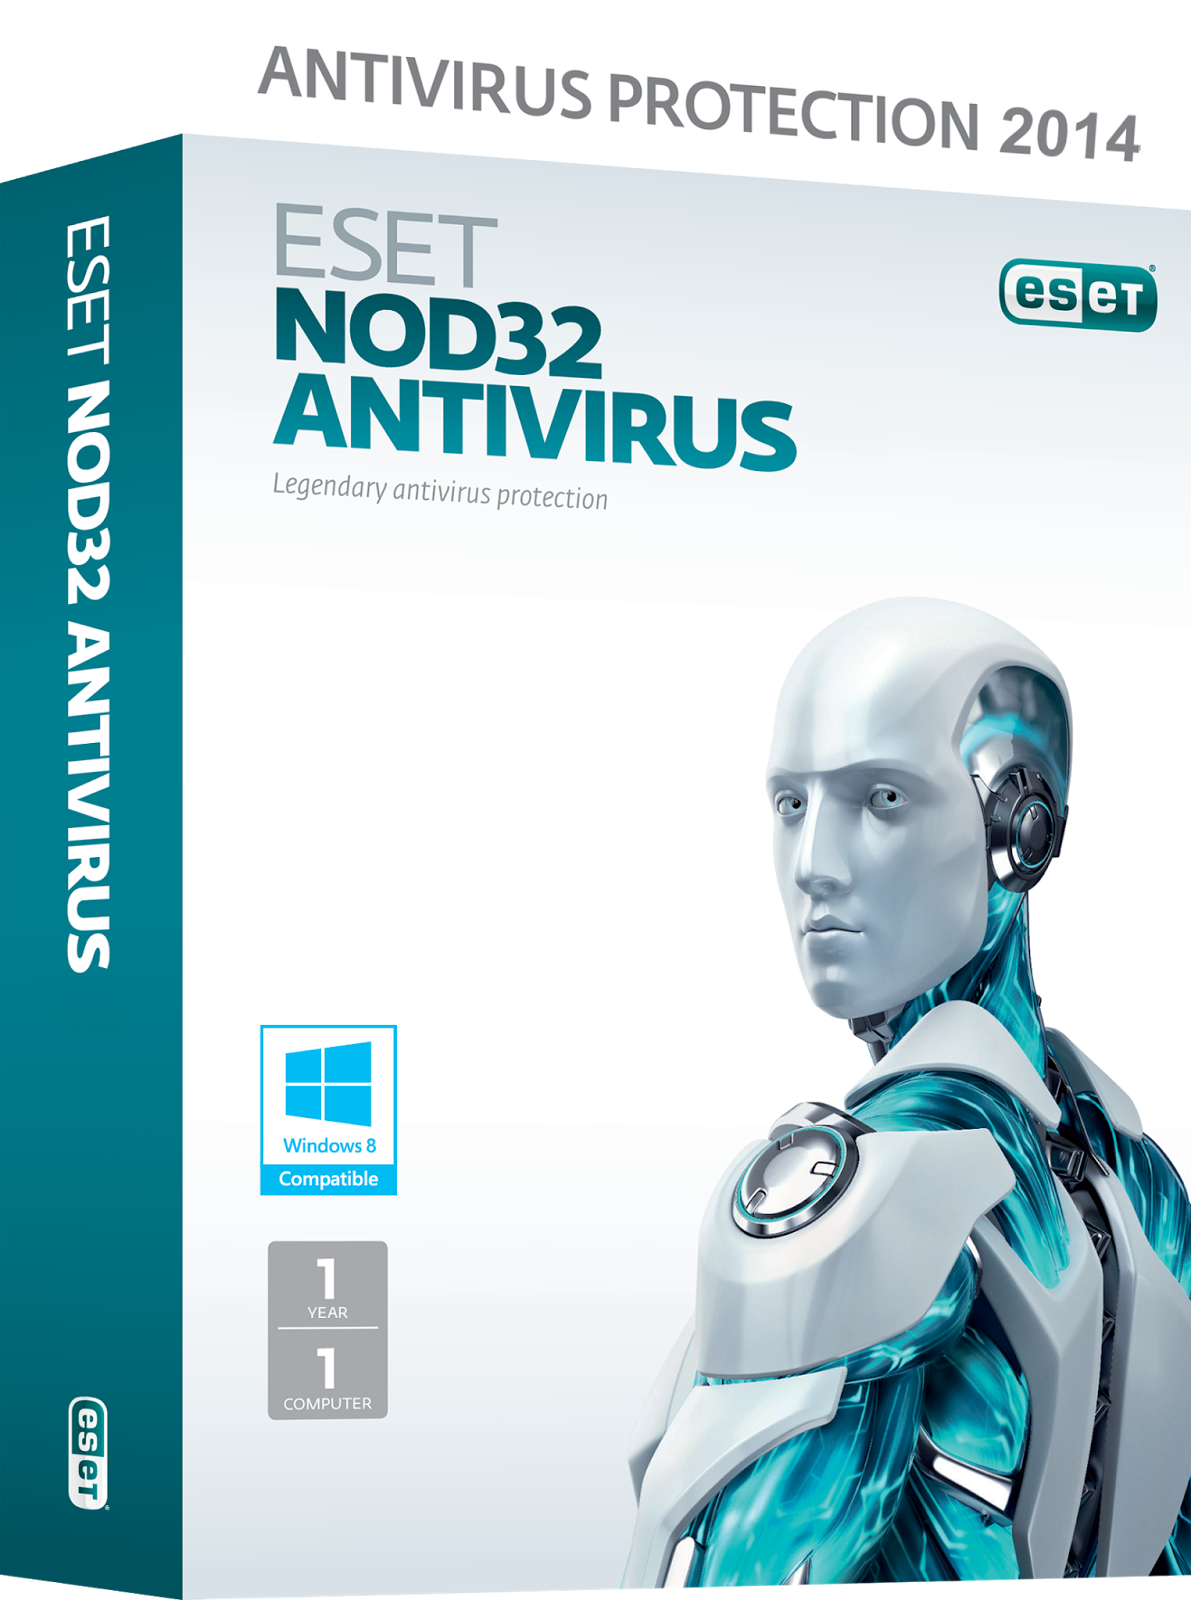 Eset Nod32 Antivirus 8 0 304 0 Crack Full Version Download